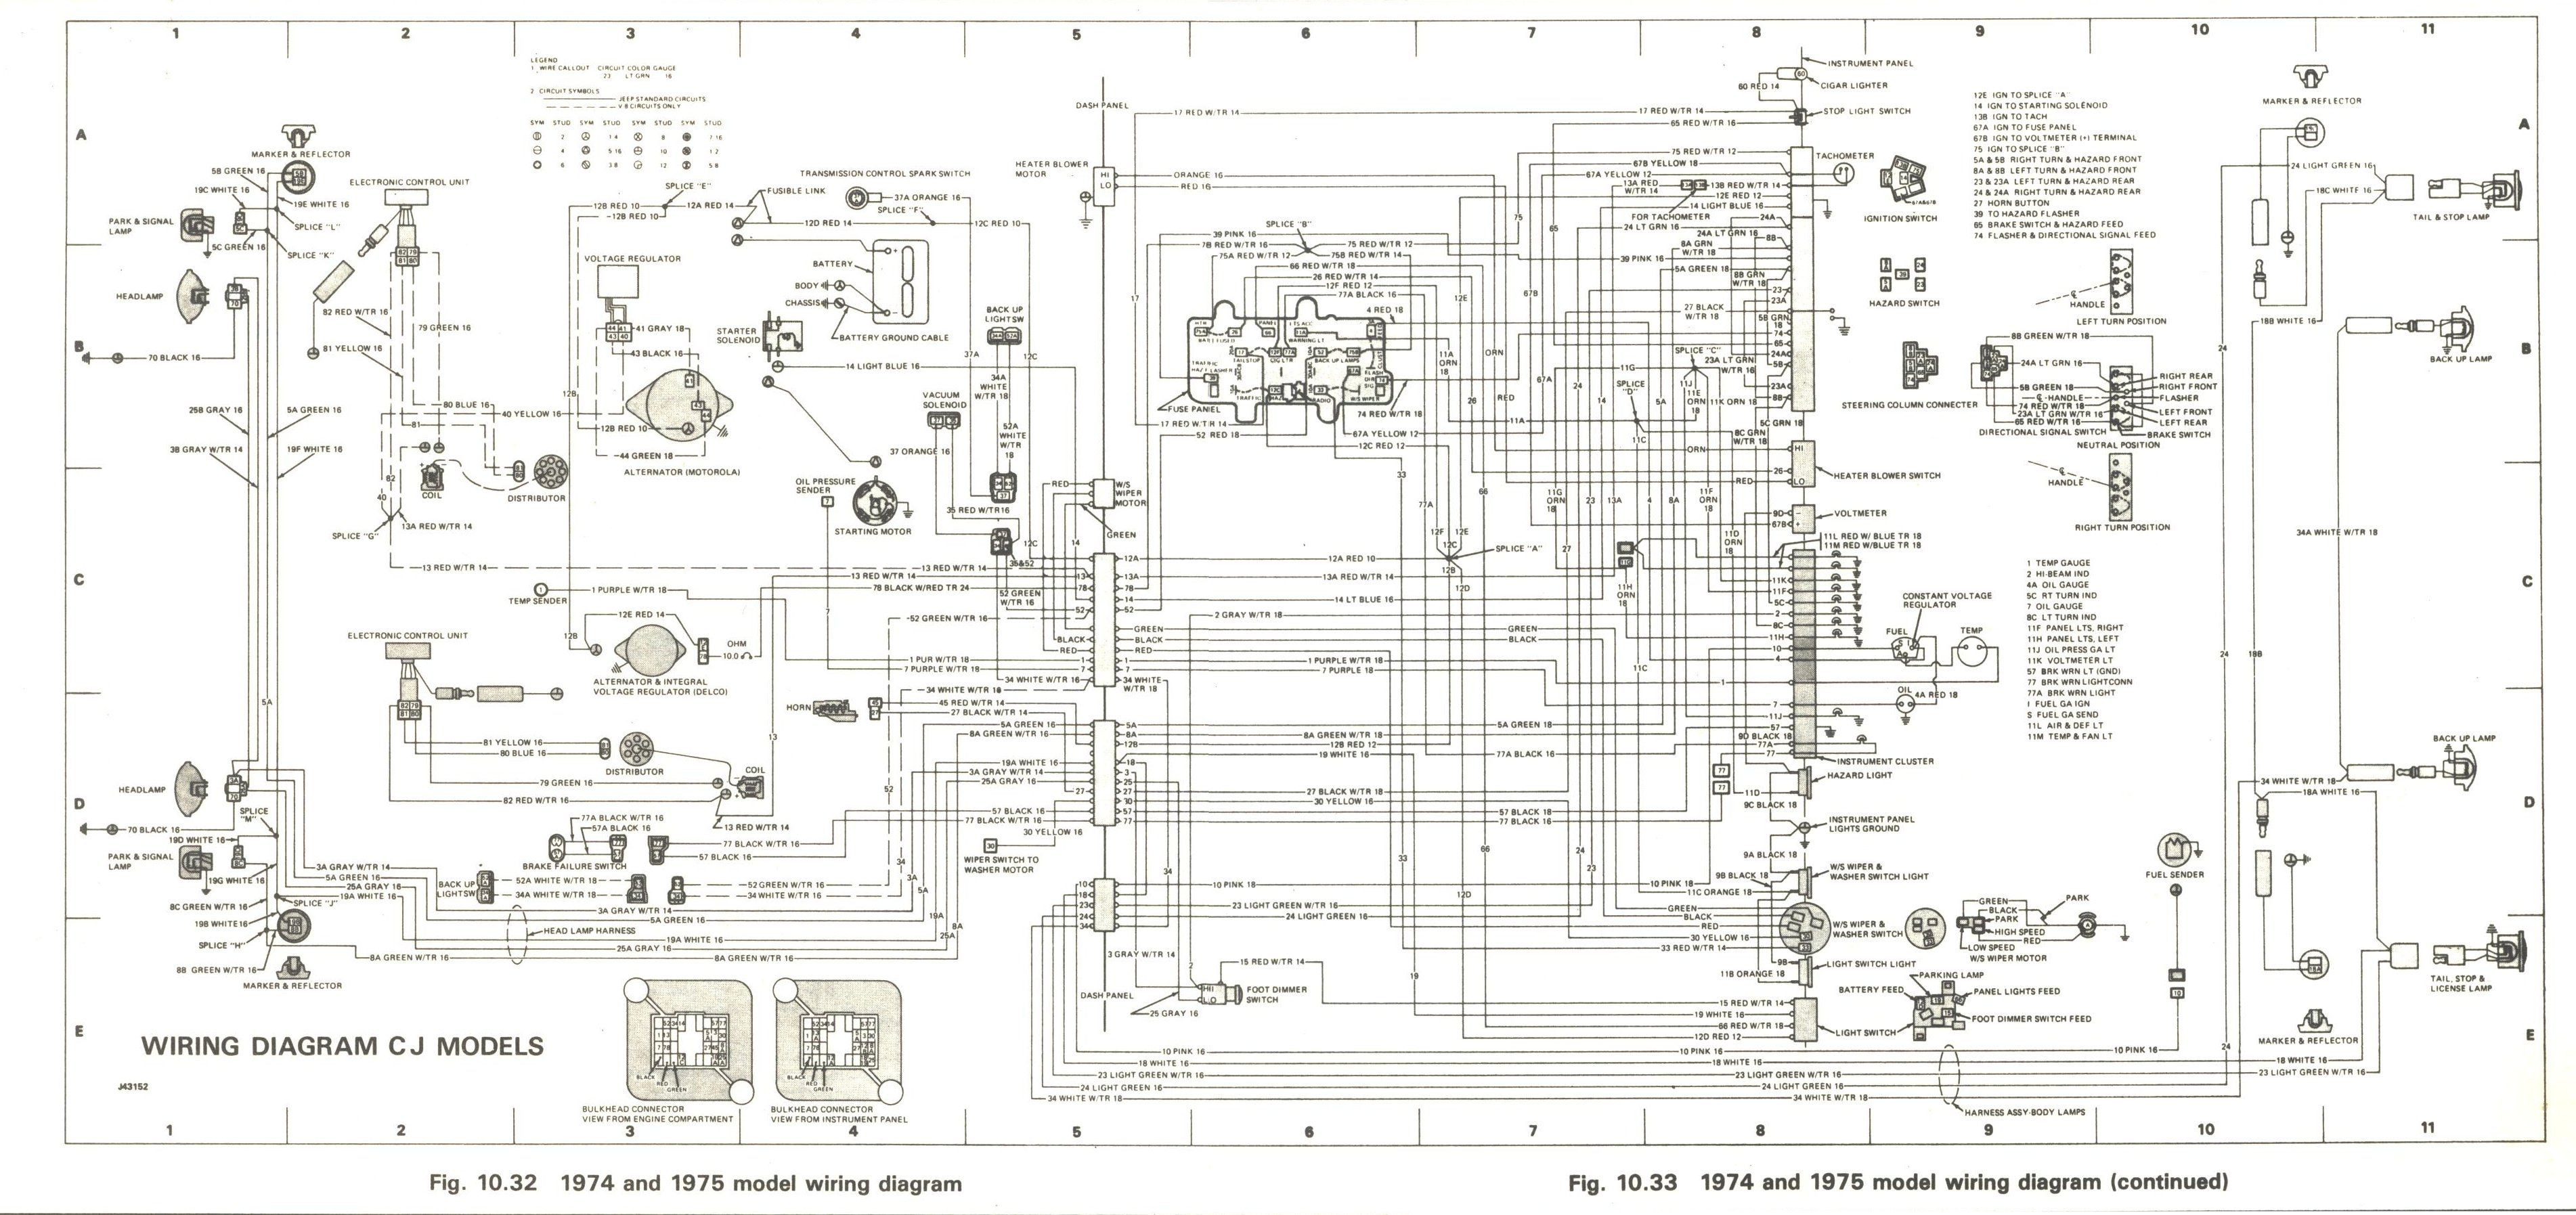 wiring diagram also jeep cj5 headlight switch wiring moreover jeep 1980 cj5 wiring diagram furthermore jeep [ 3805 x 1795 Pixel ]